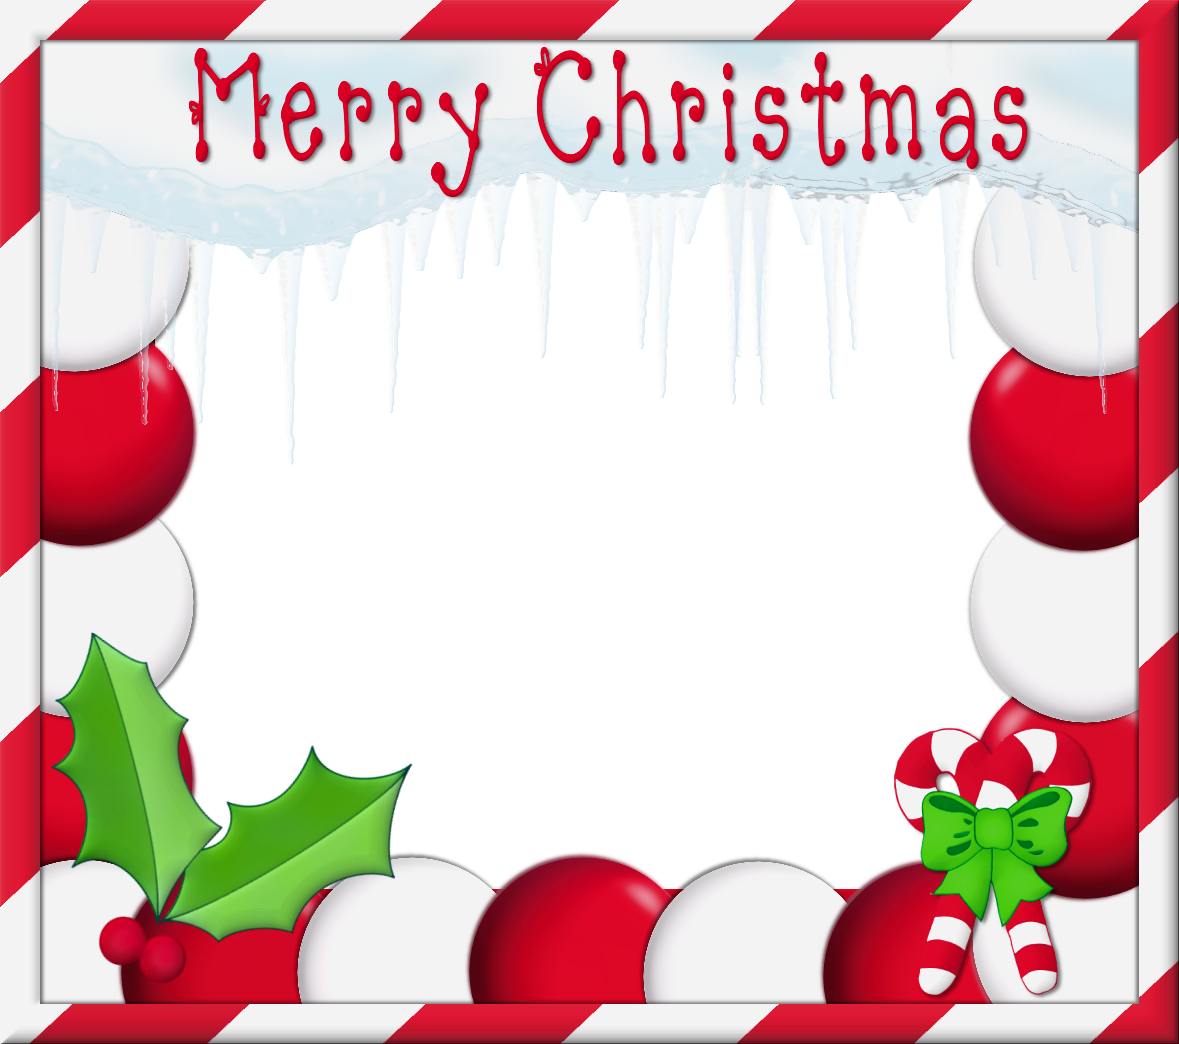 Christmas clipart frame image black and white stock Merry Christmas PNG Photo Frame | Gallery Yopriceville - High ... image black and white stock